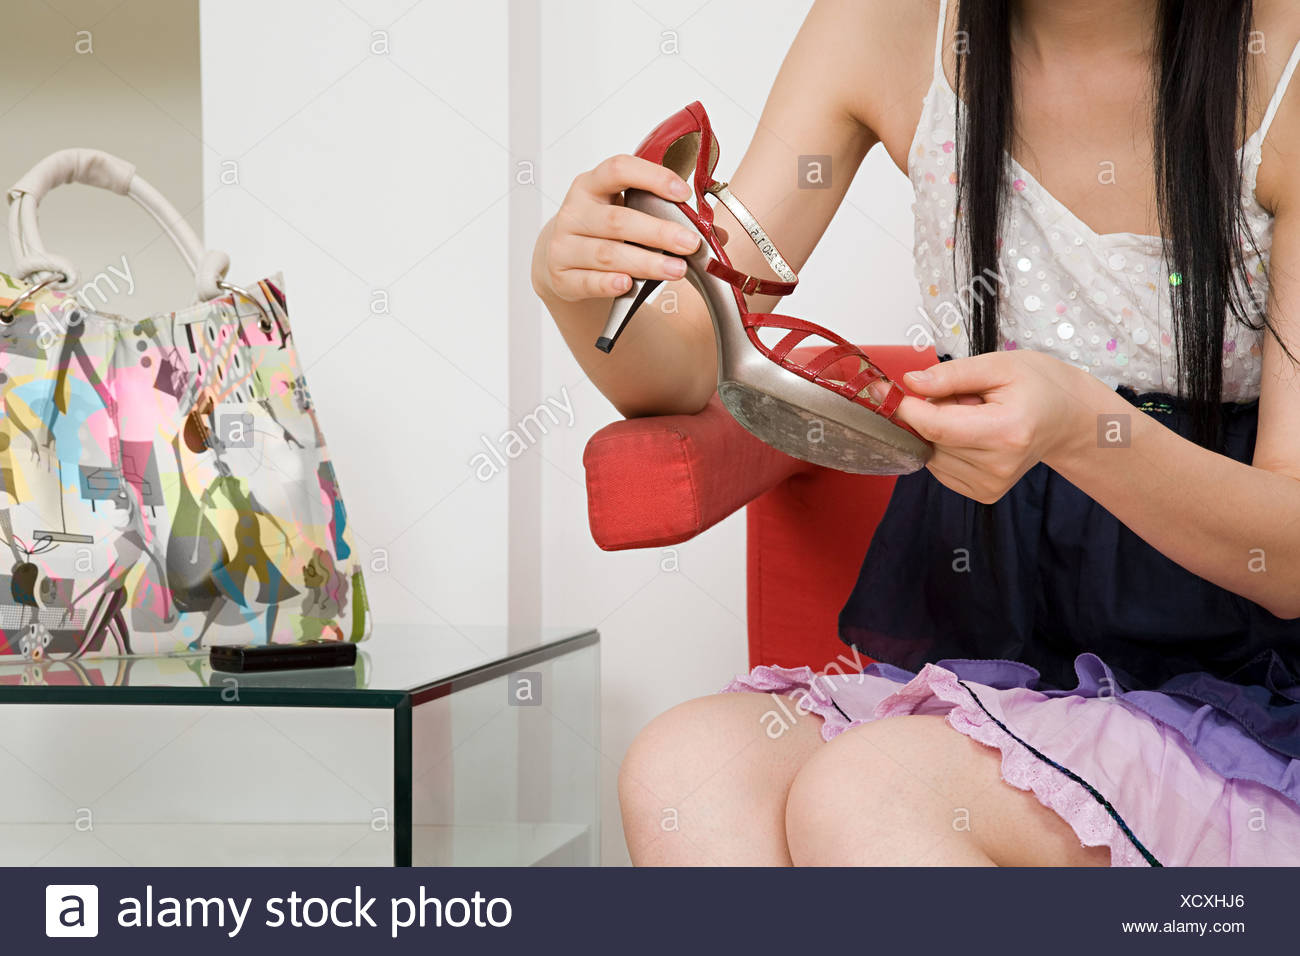 Woman holding a high heeled shoe - Stock Image